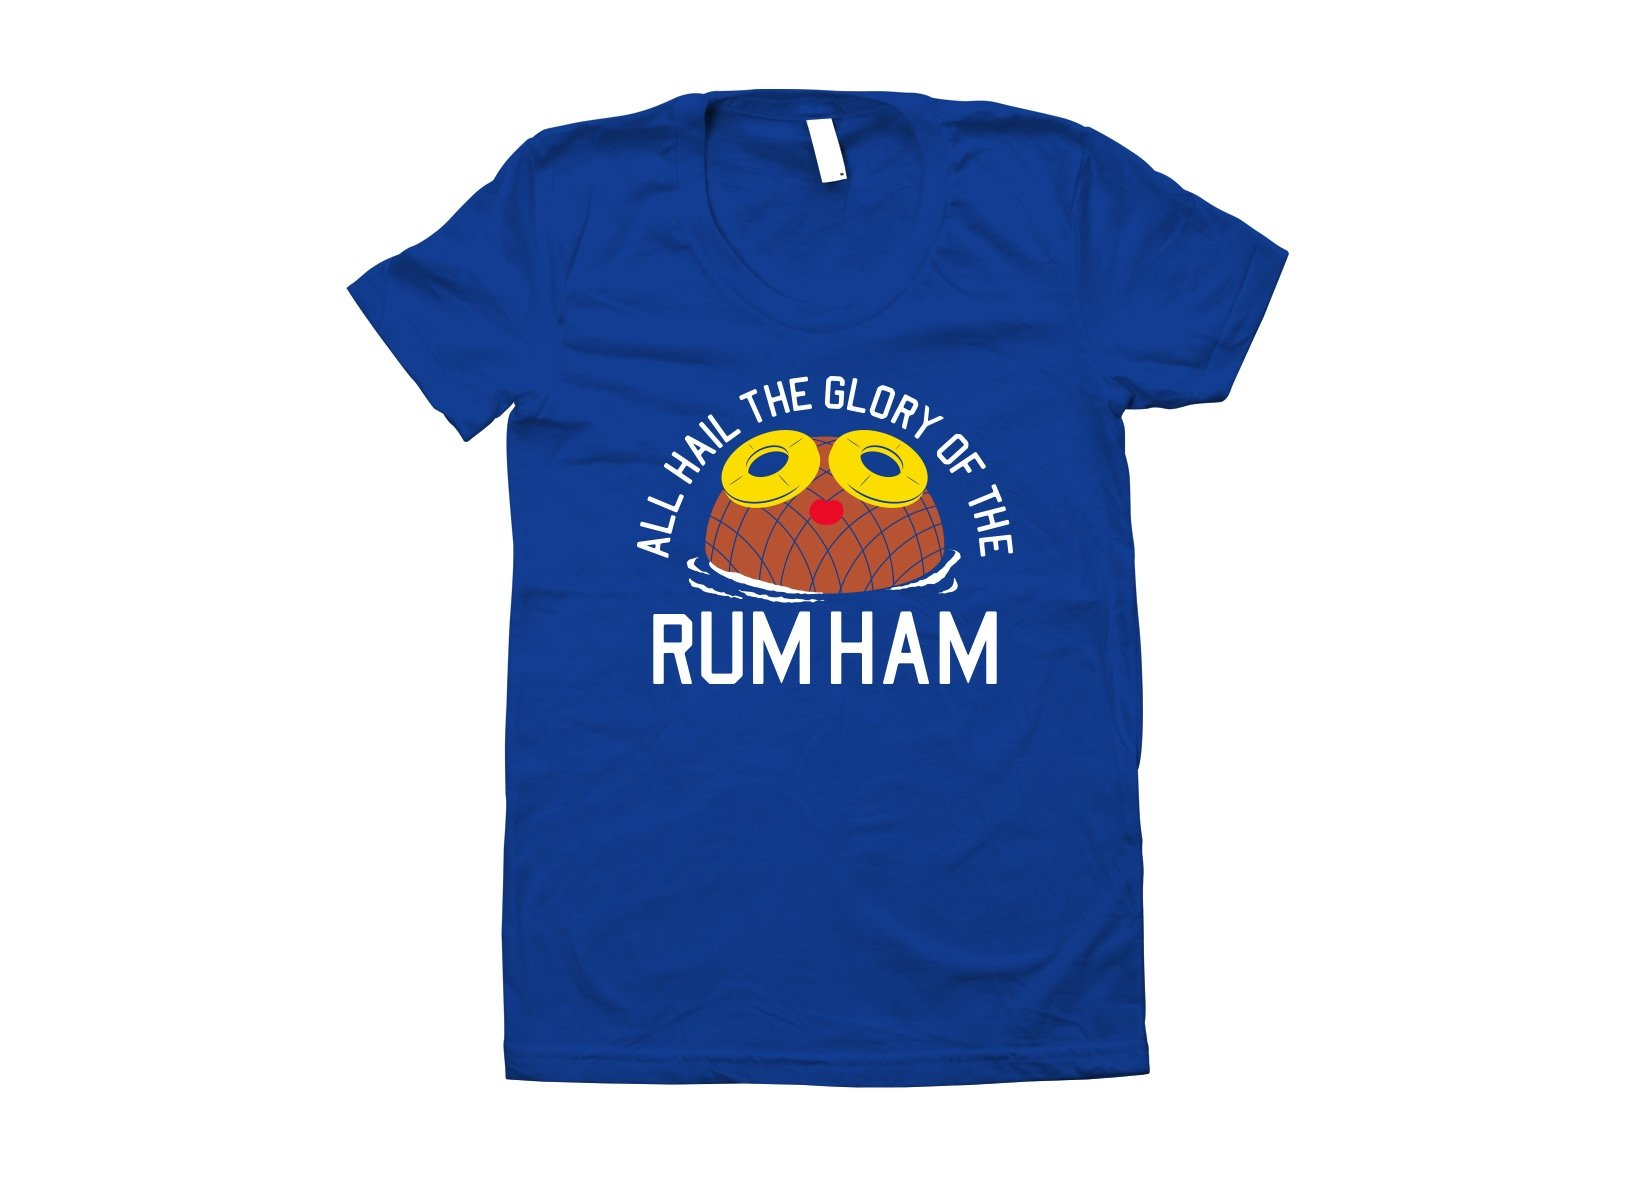 Rum Ham on Juniors T-Shirt